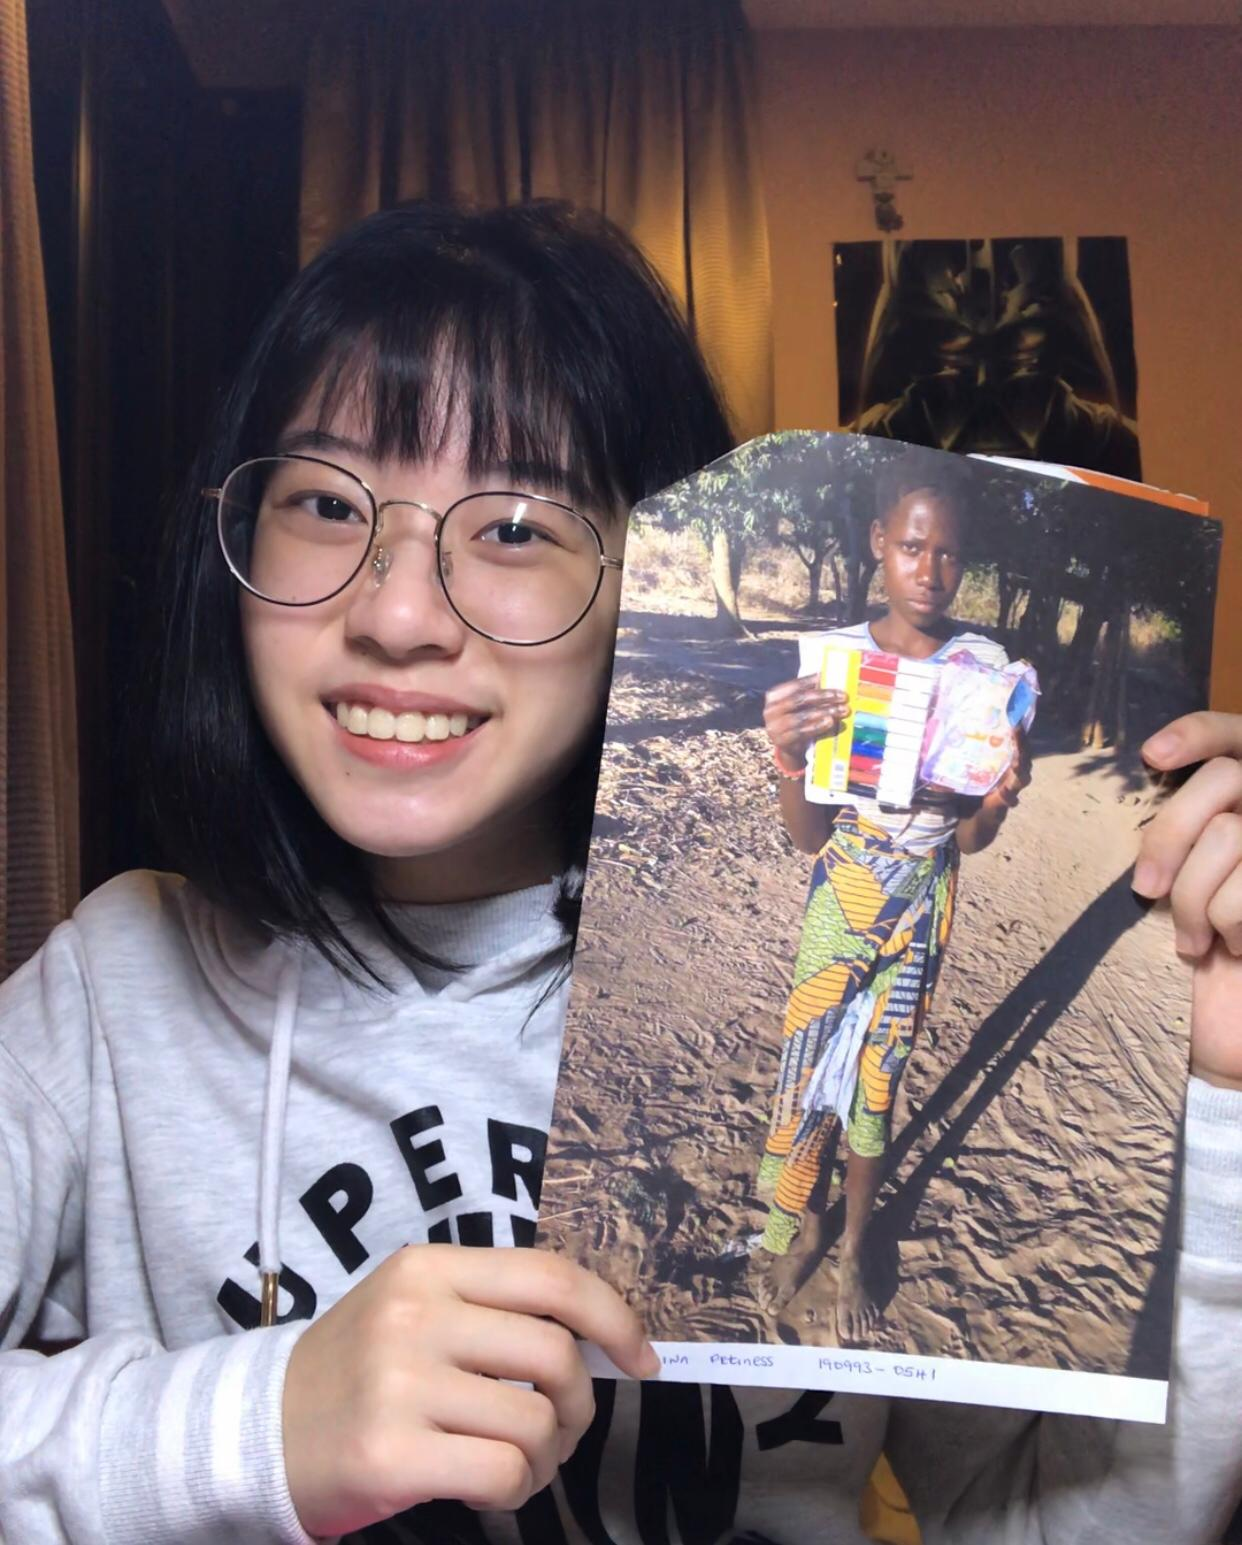 Andrea with a photo of Petiness and the gift she sent